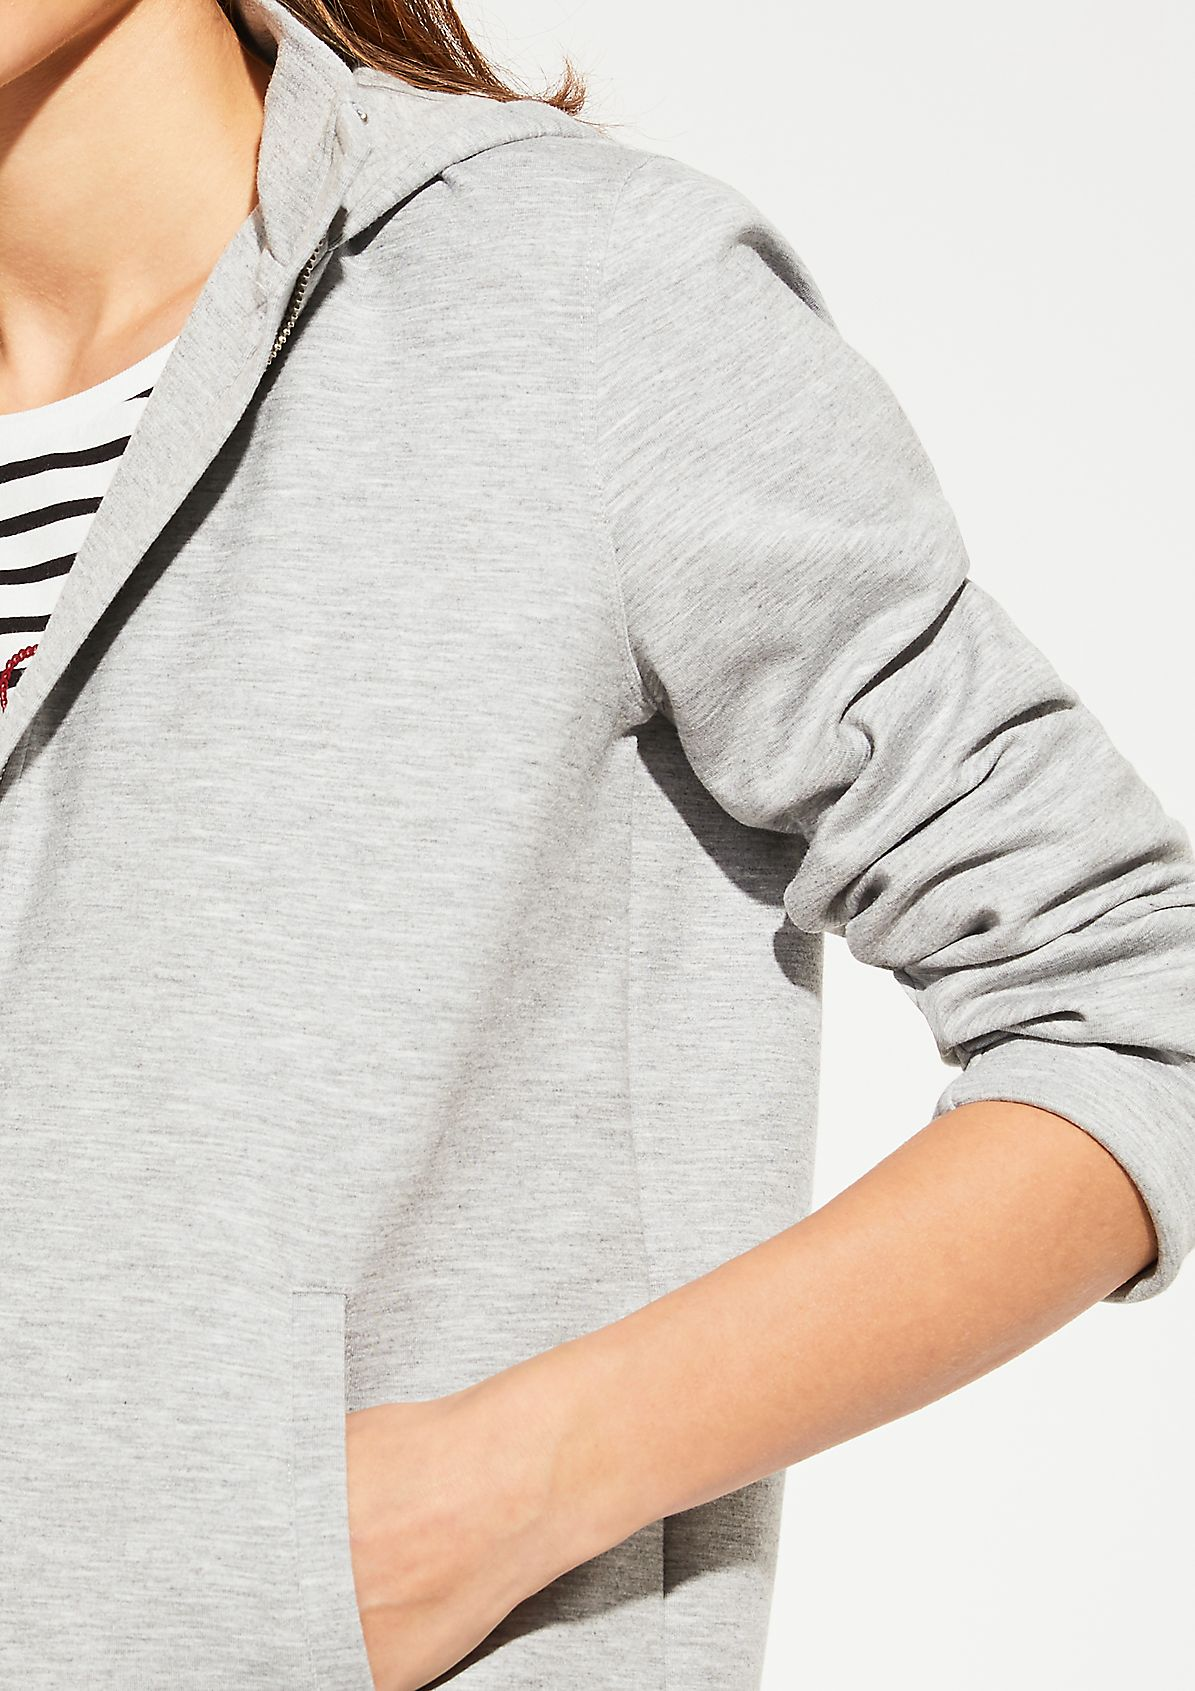 Sweatshirt fabric in an athleisure style from comma